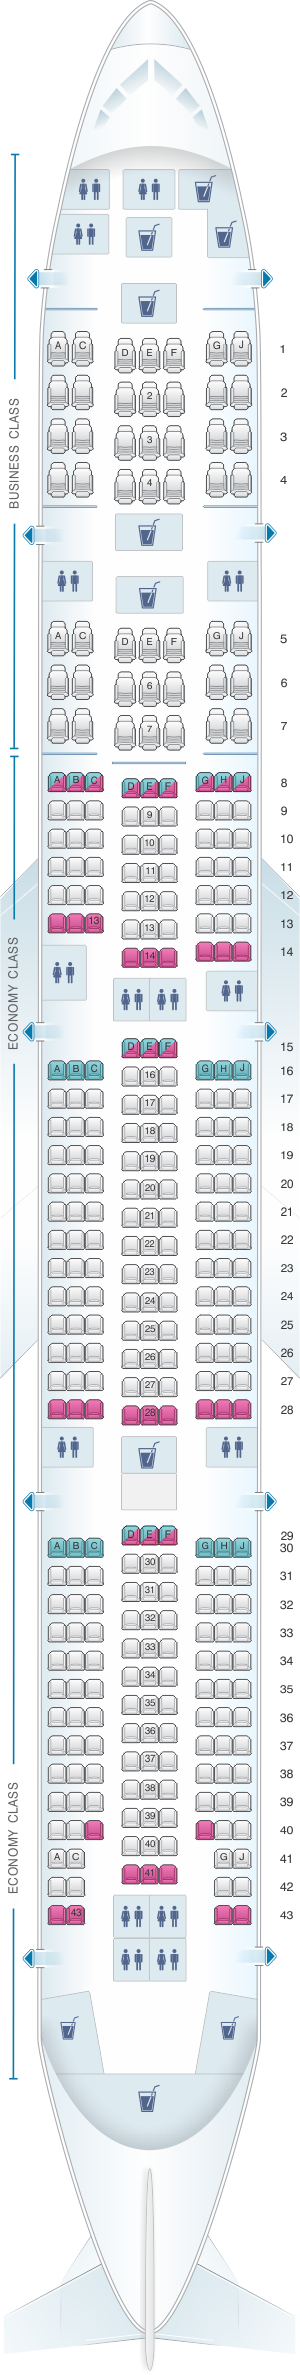 Seat map for Egyptair Boeing B777 300